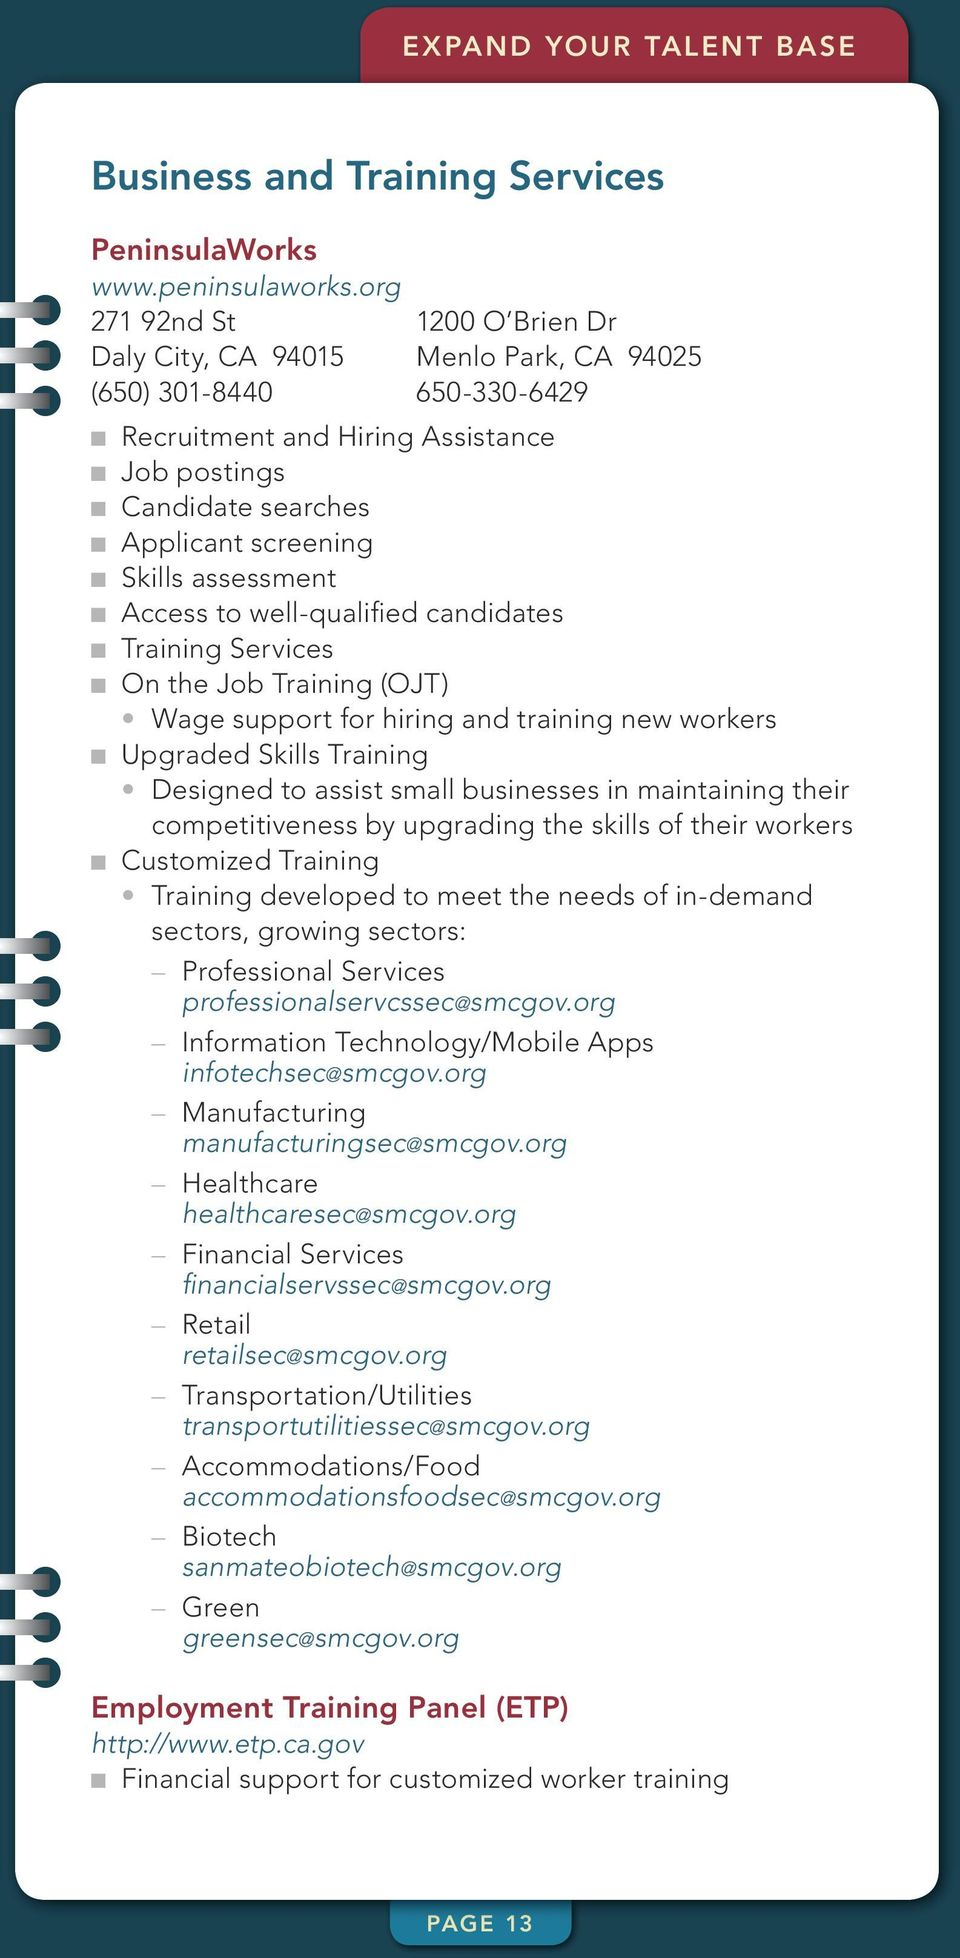 Skills assessment n Access to well-qualified candidates n Training Services n On the Job Training (OJT) Wage support for hiring and training new workers n Upgraded Skills Training Designed to assist